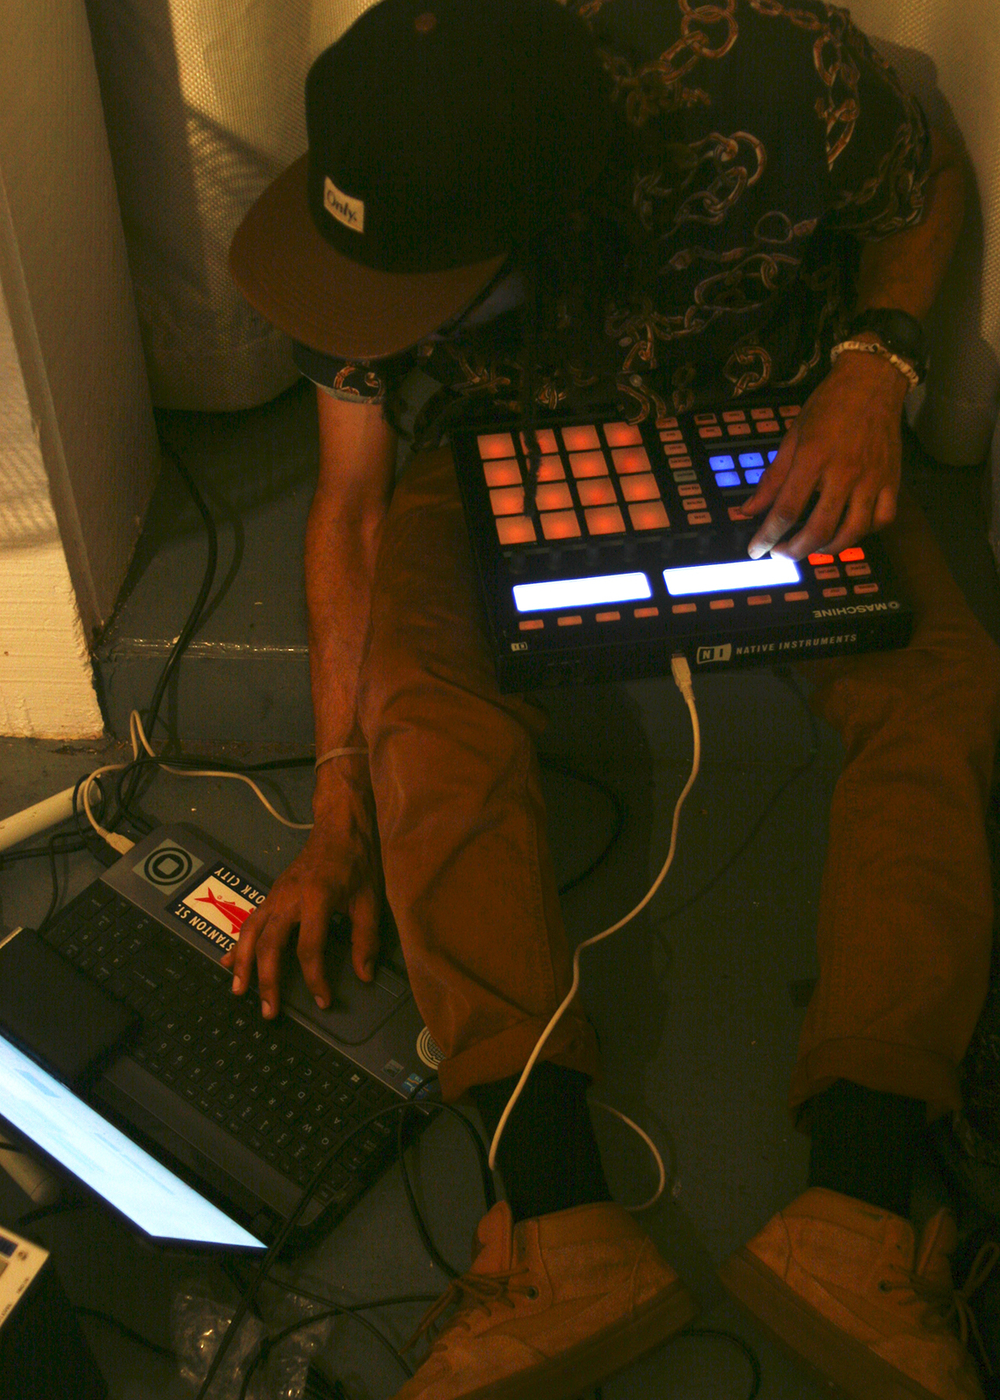 Beat maker/ Producer, Langston Black aka Langsto - Life and Death in The Age of Ghost art show, curated by Lateef Dameer at Undercurrent Projects Gallery (recap) Image 2